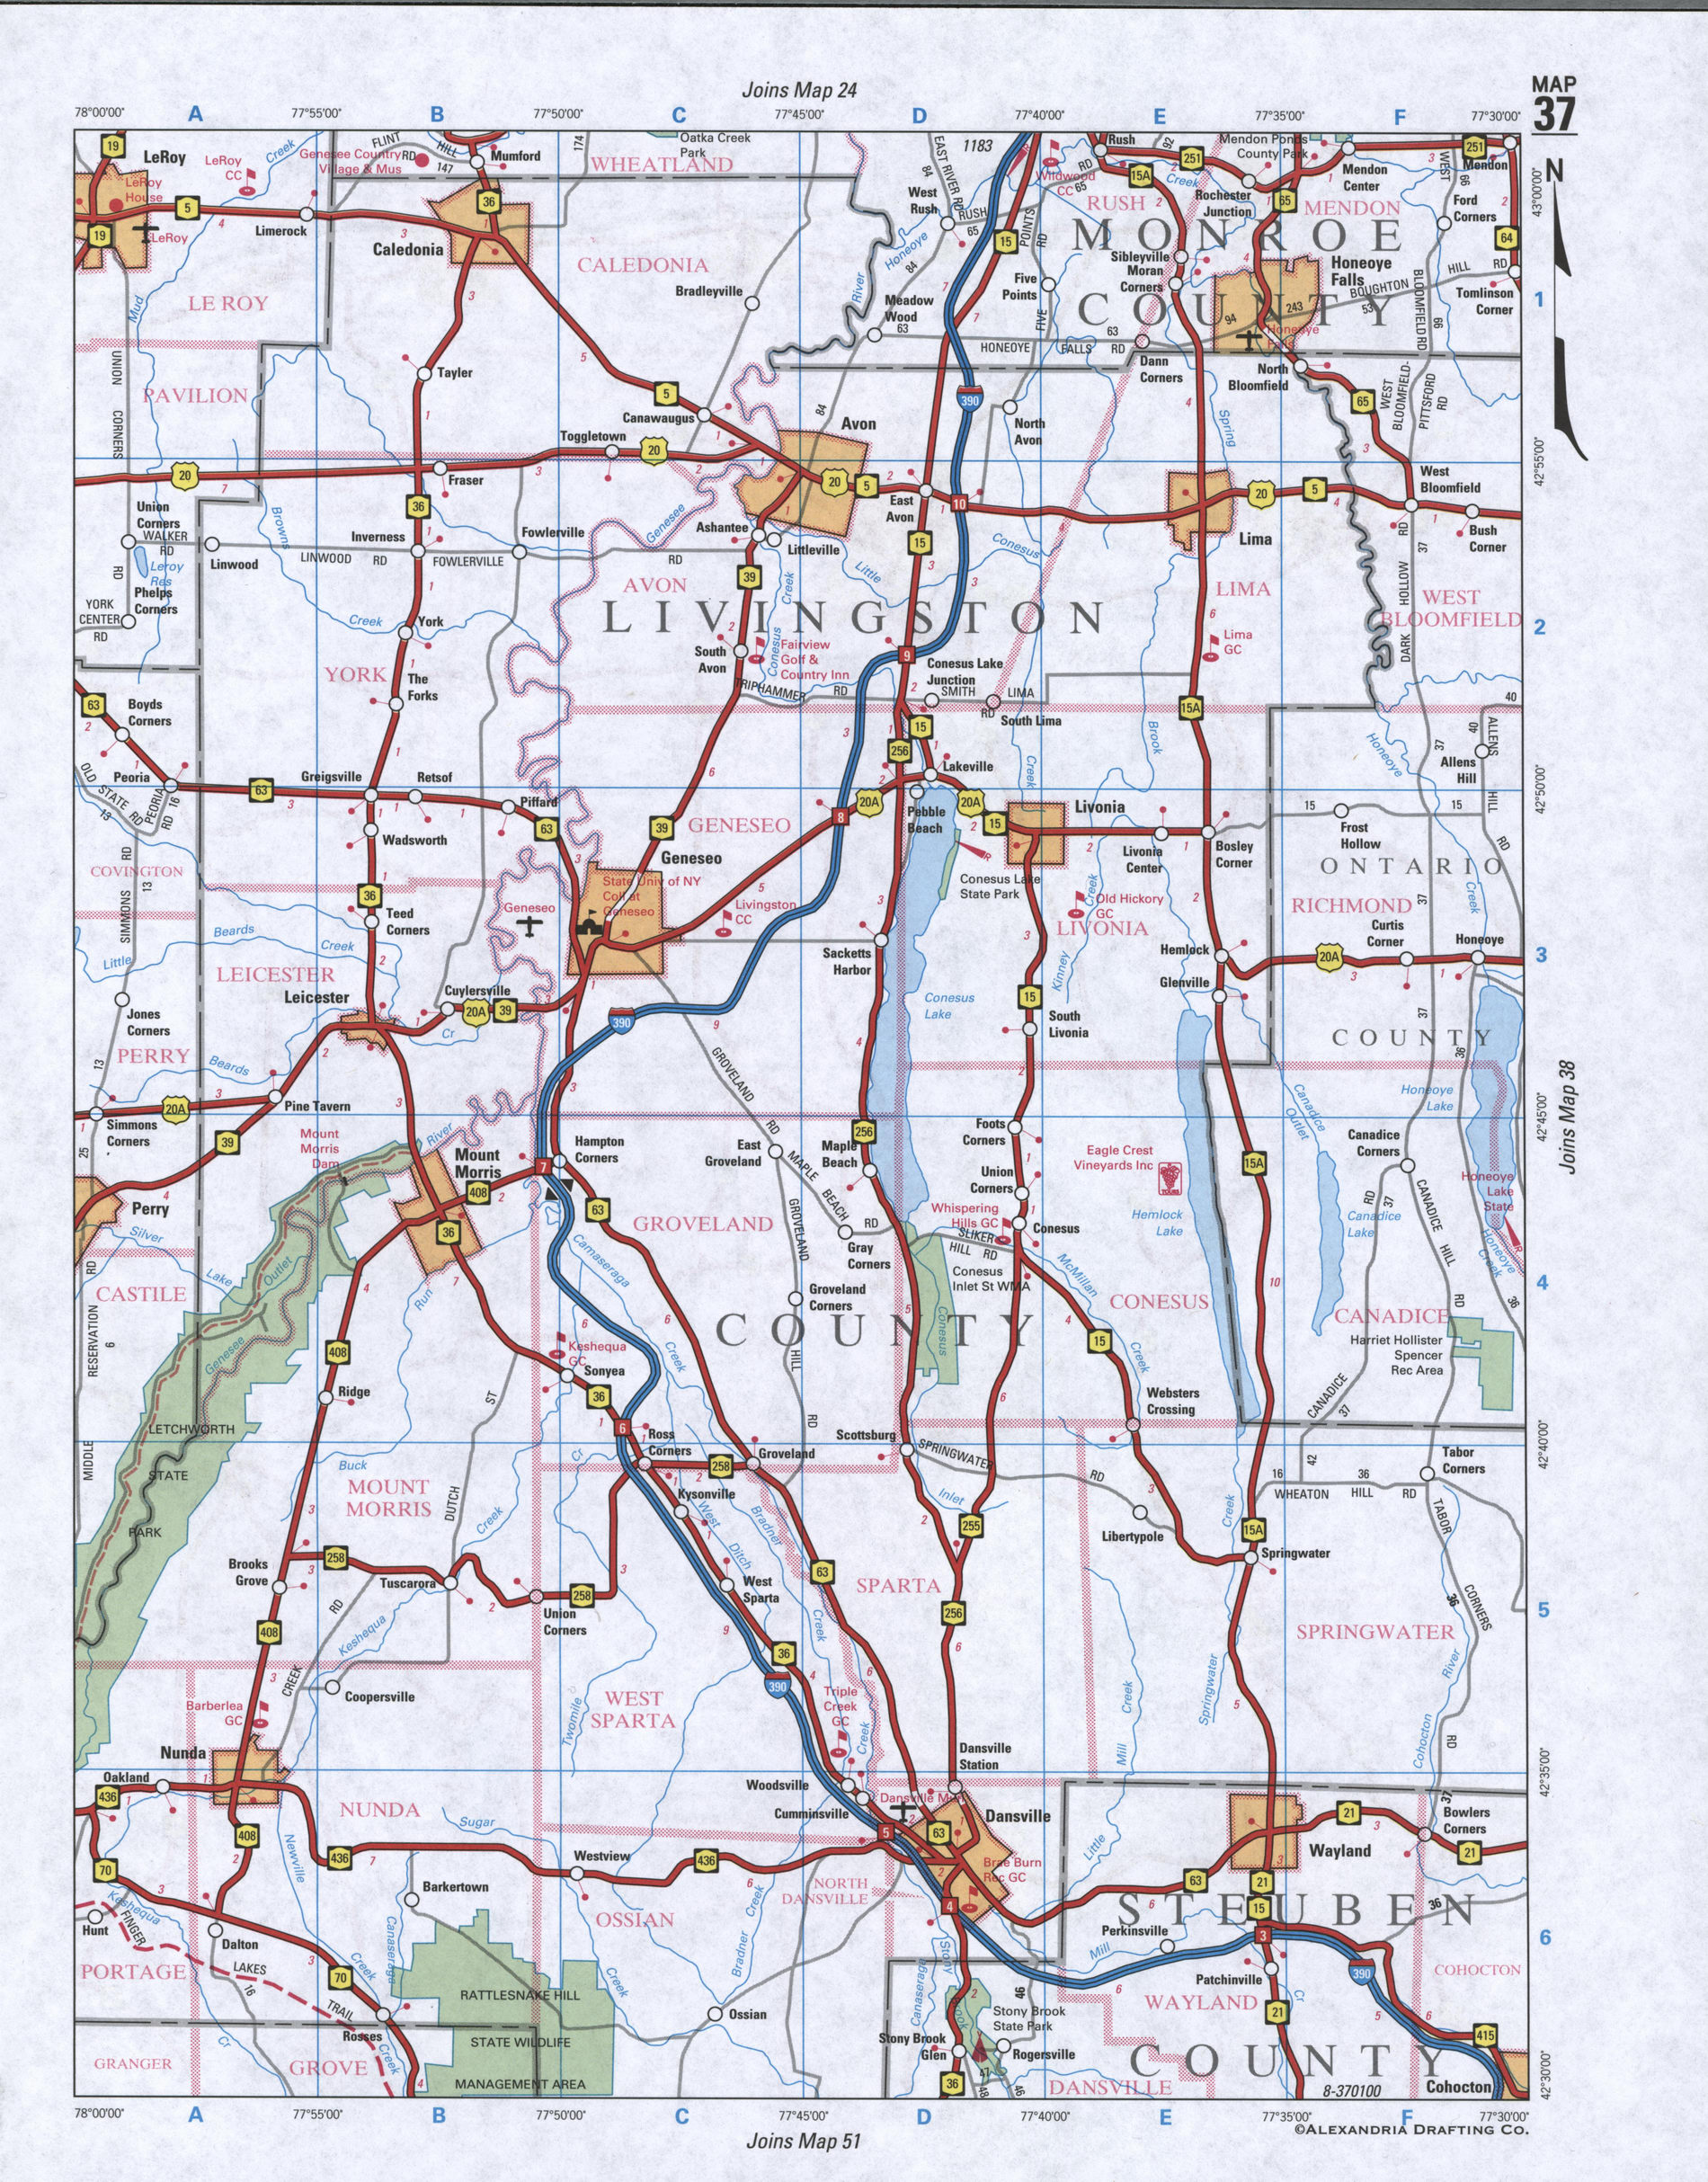 Map of Livingston County, New York state